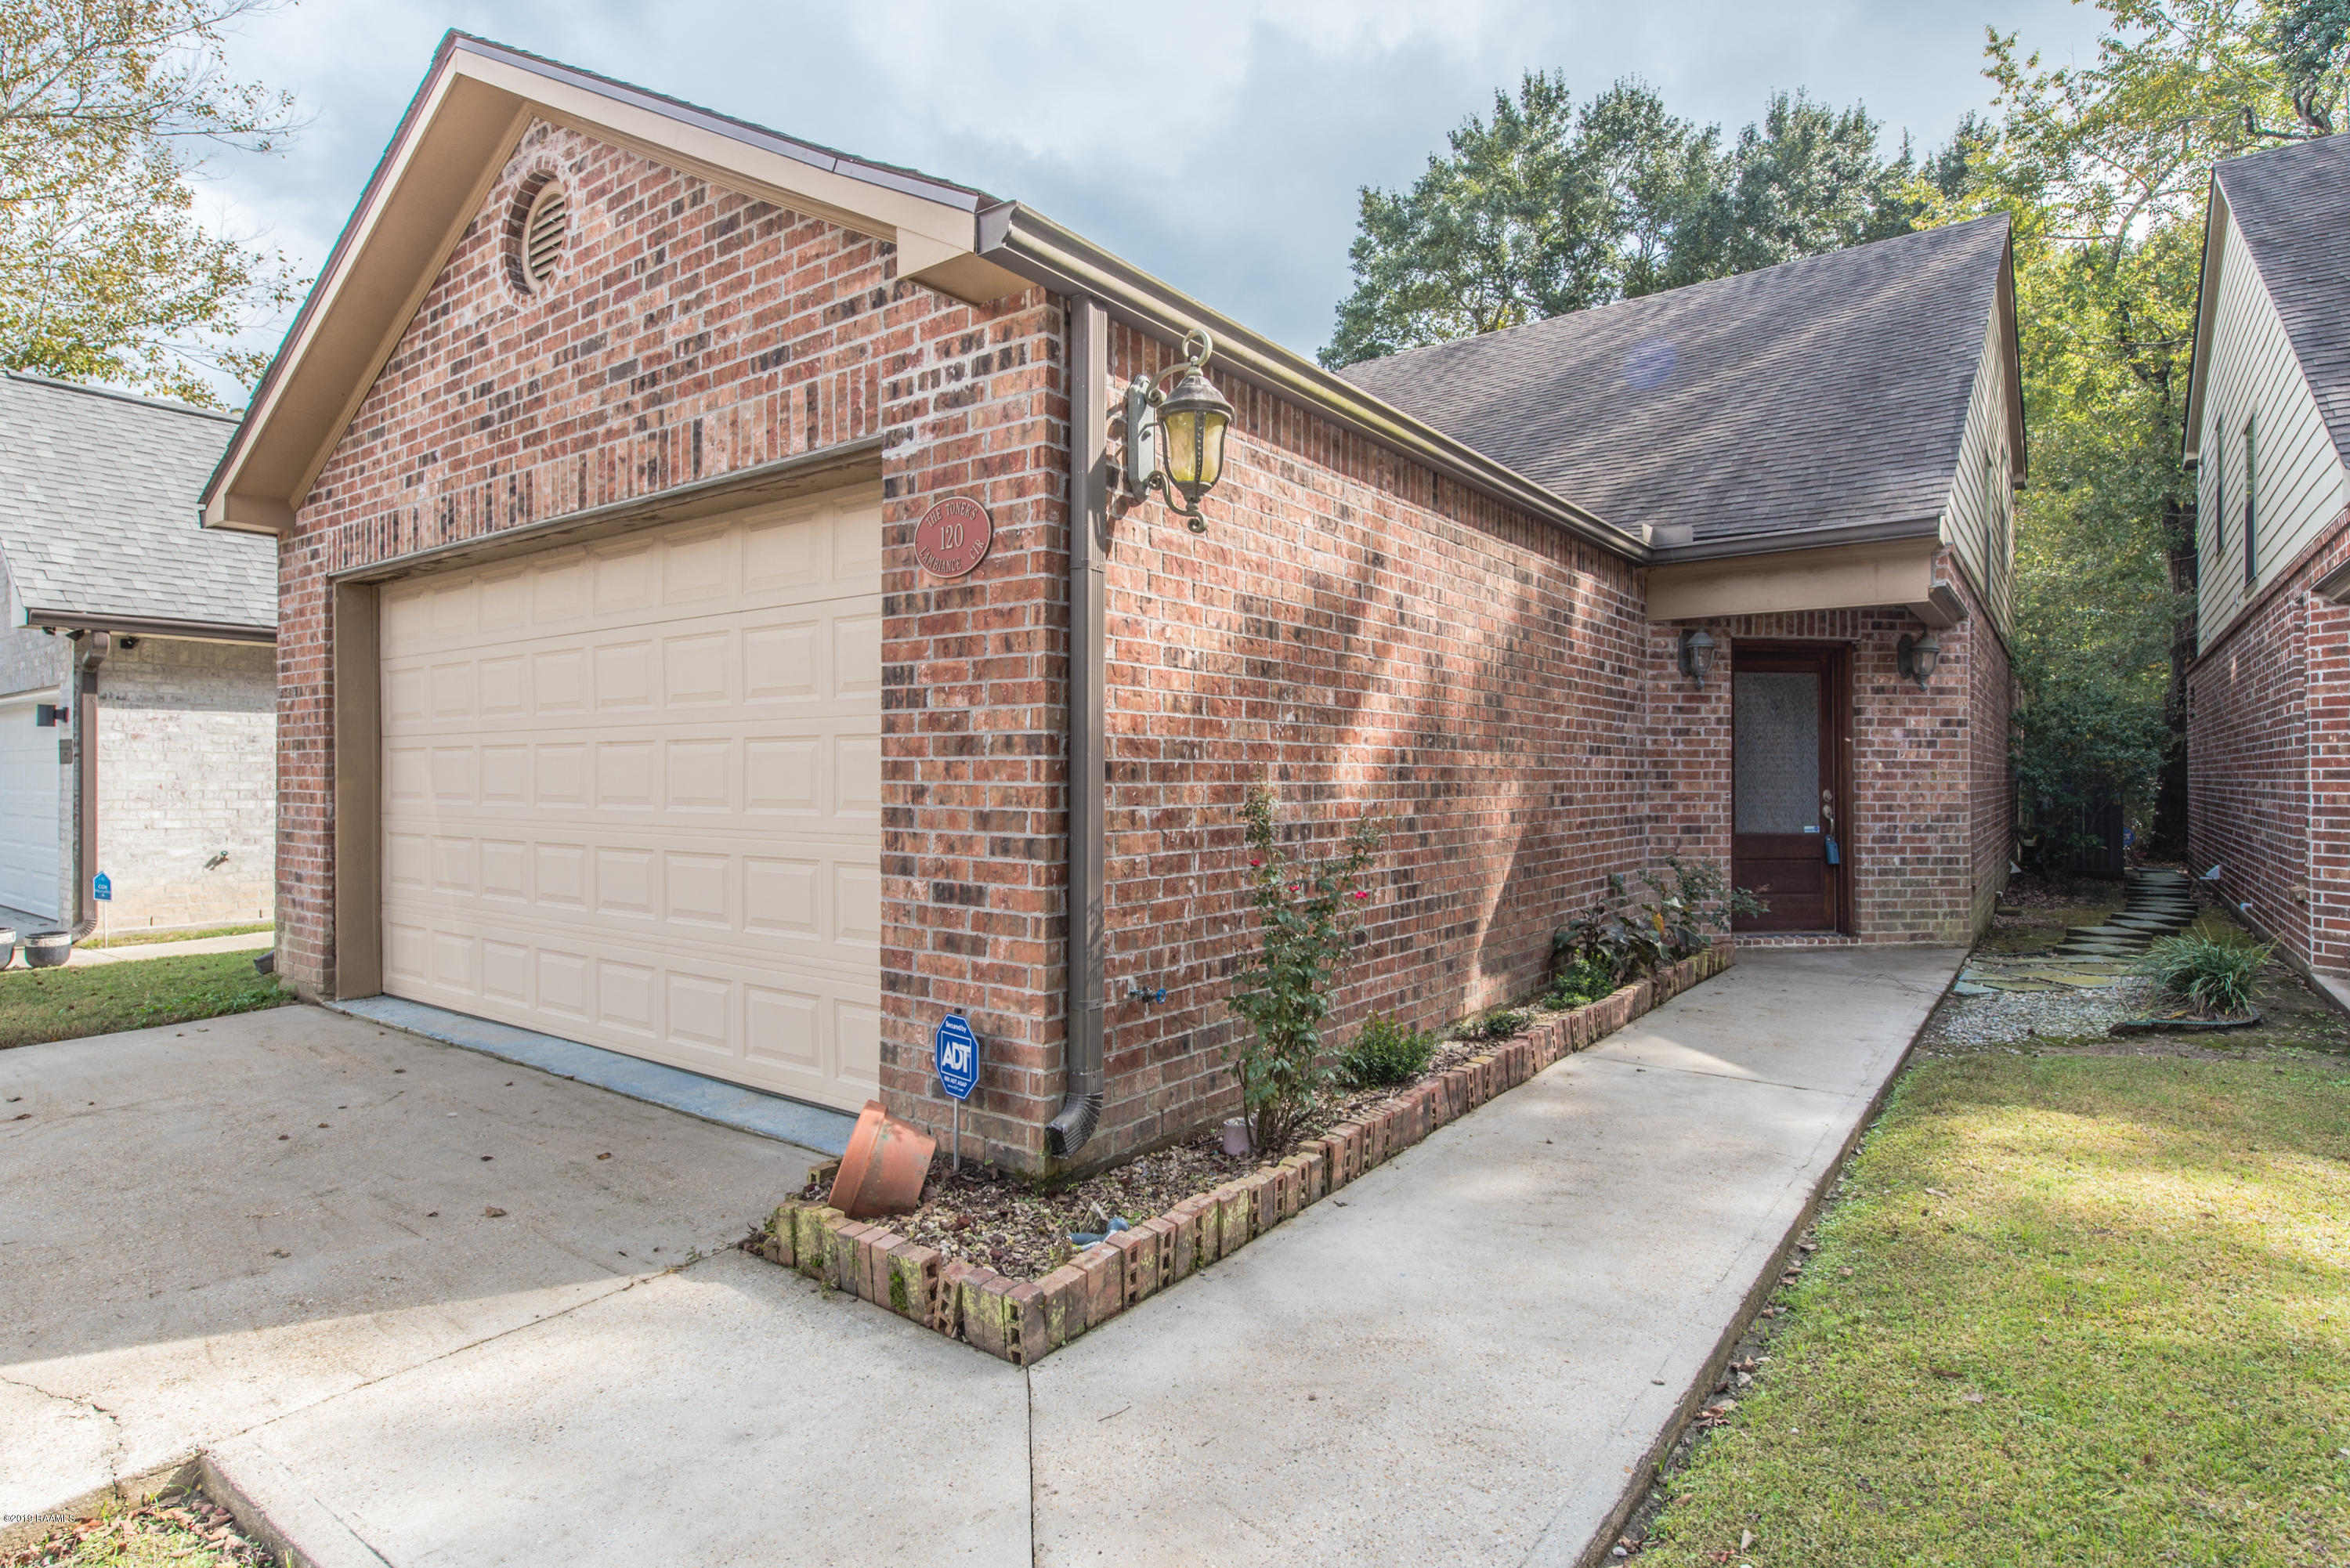 120 Ambiance Circle, Lafayette, LA 70508 Photo #1